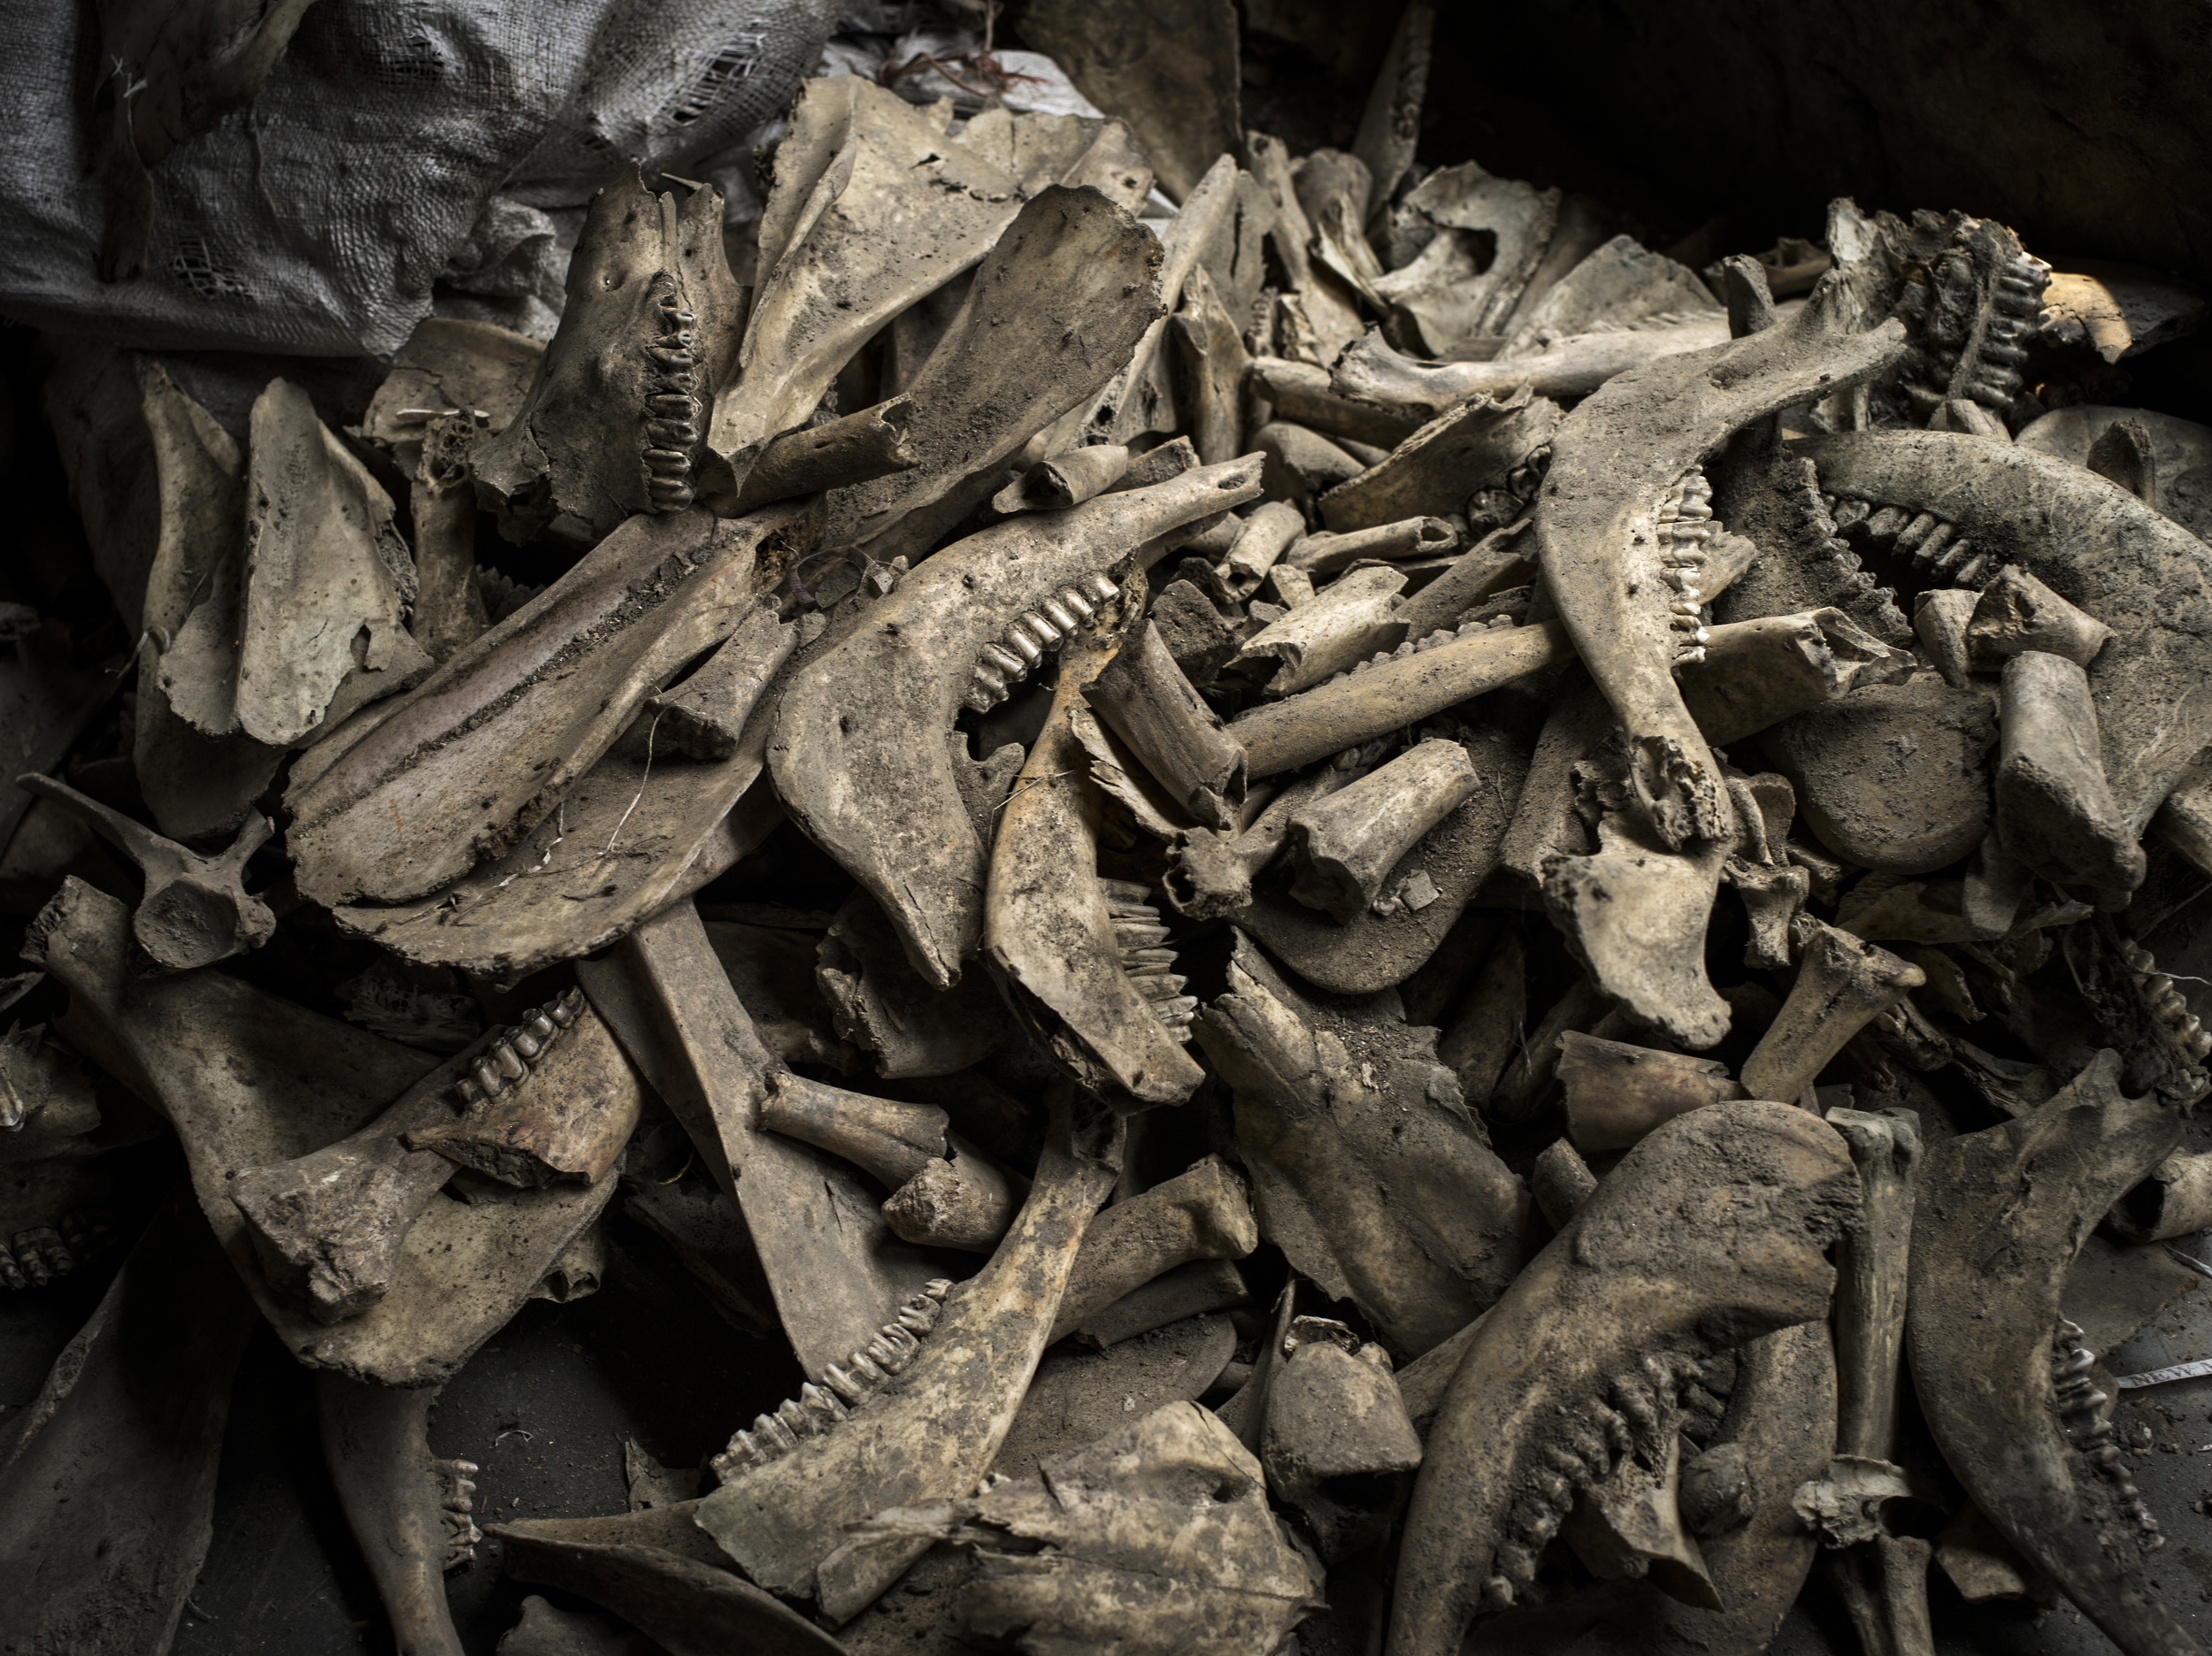 Bones collected from a landfill